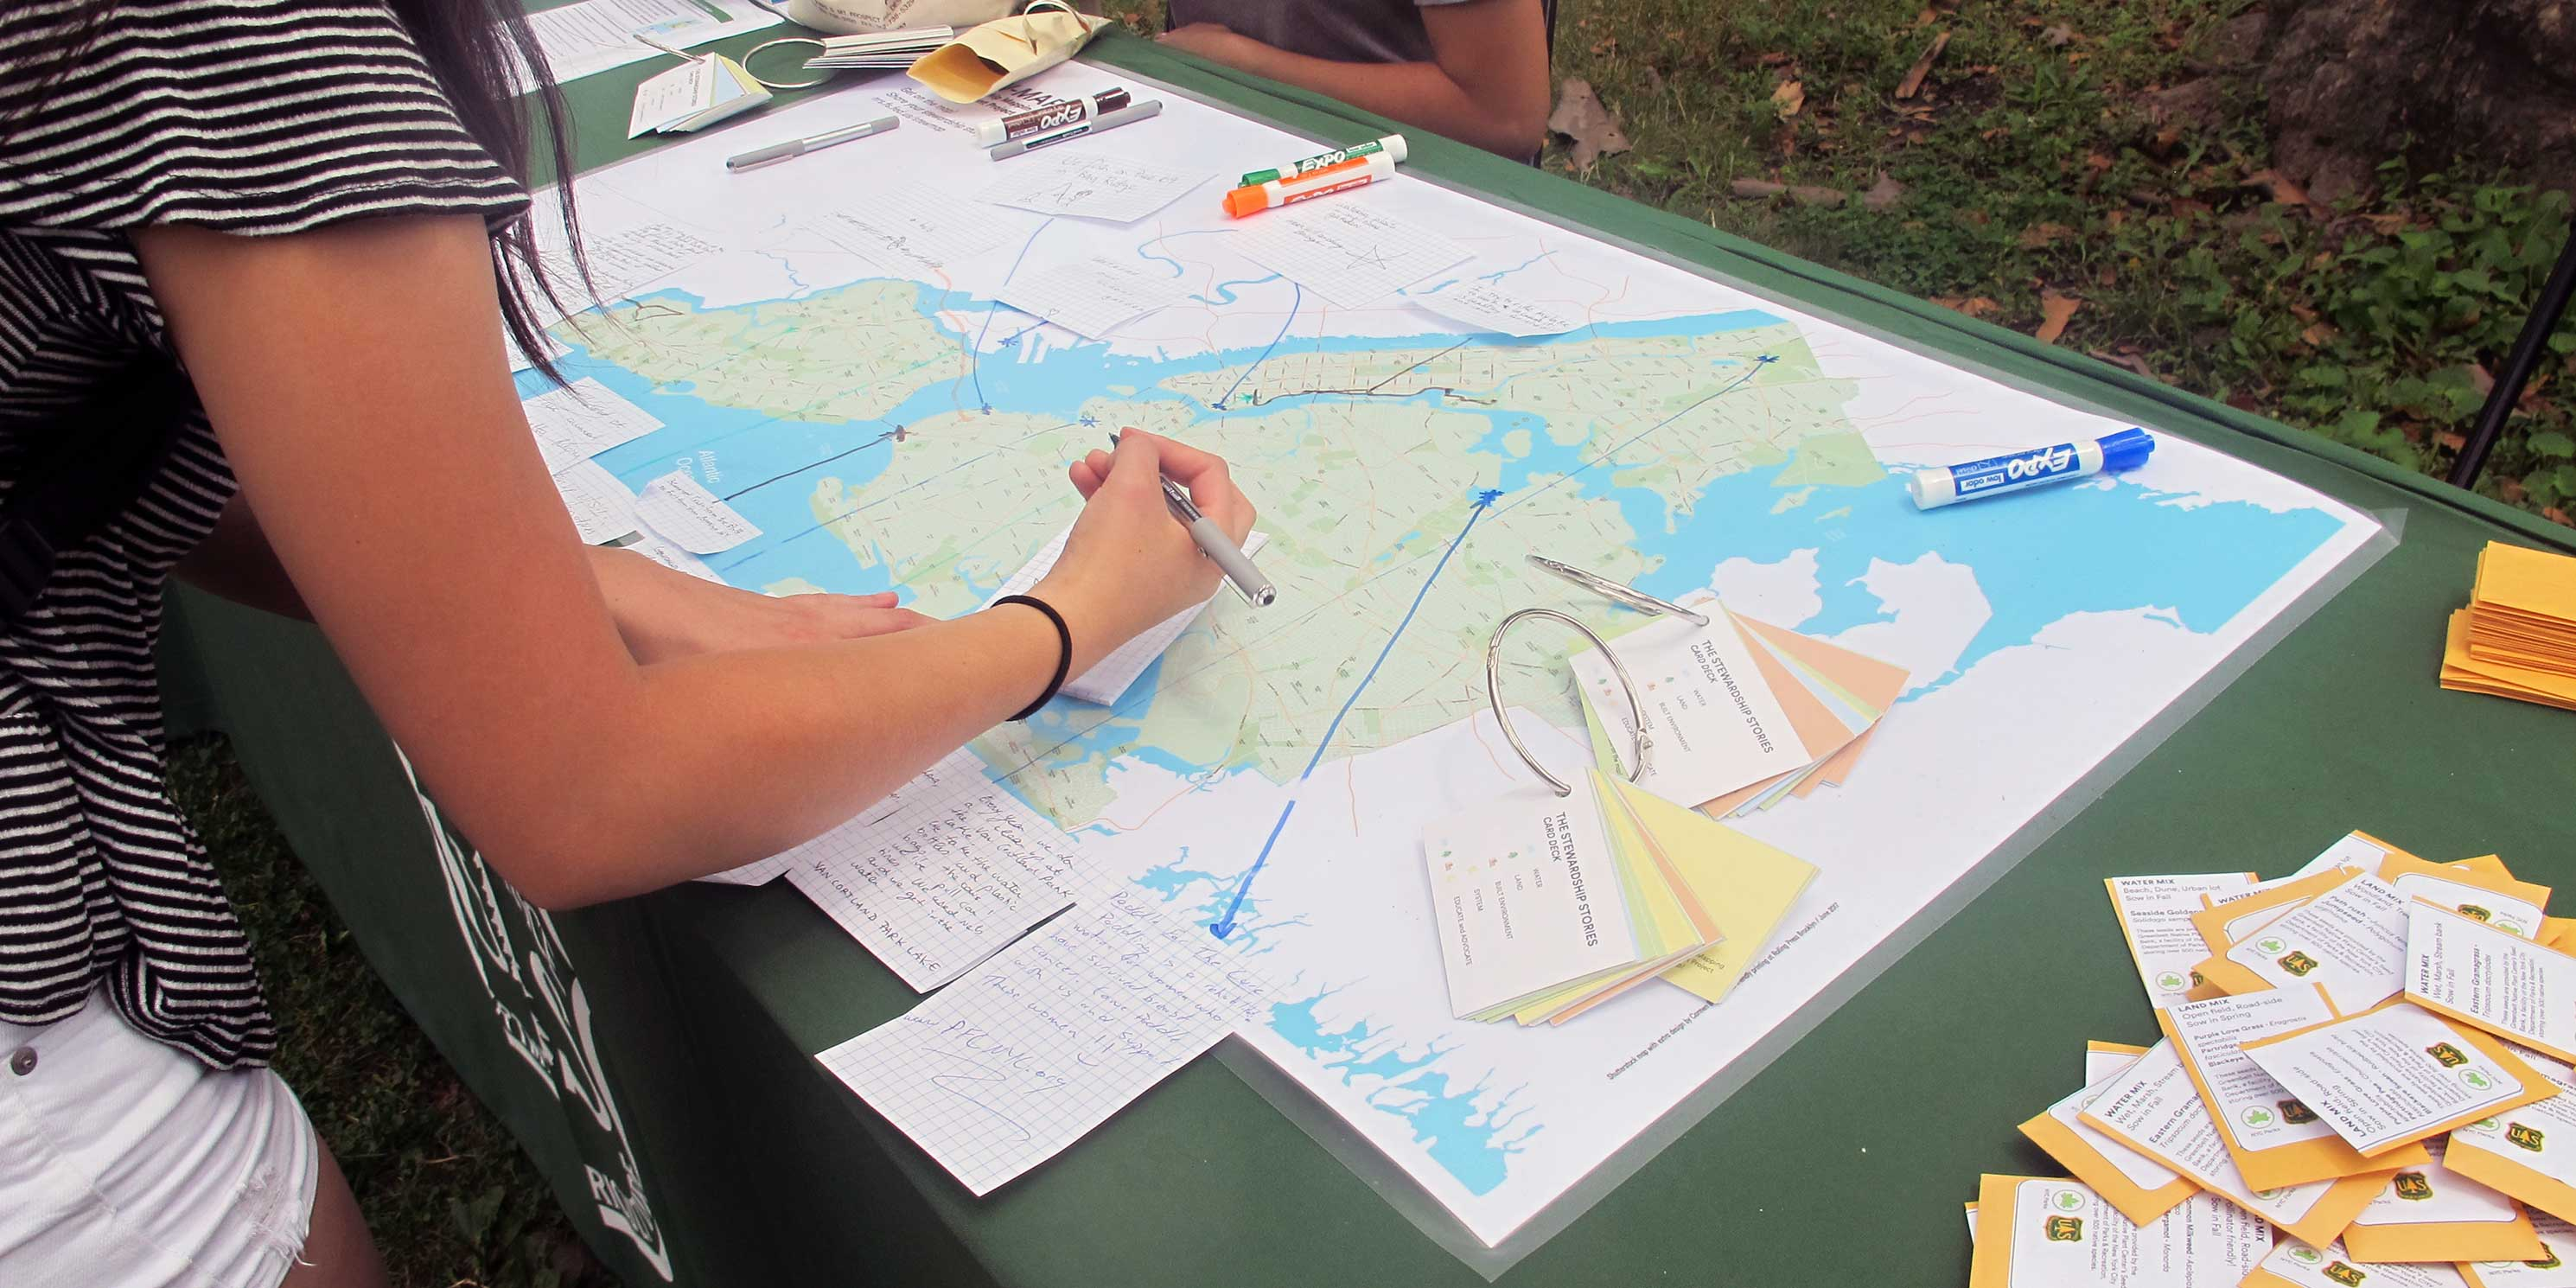 A woman draws on a map at a US Forest Service Urban Ranger Station in New York City